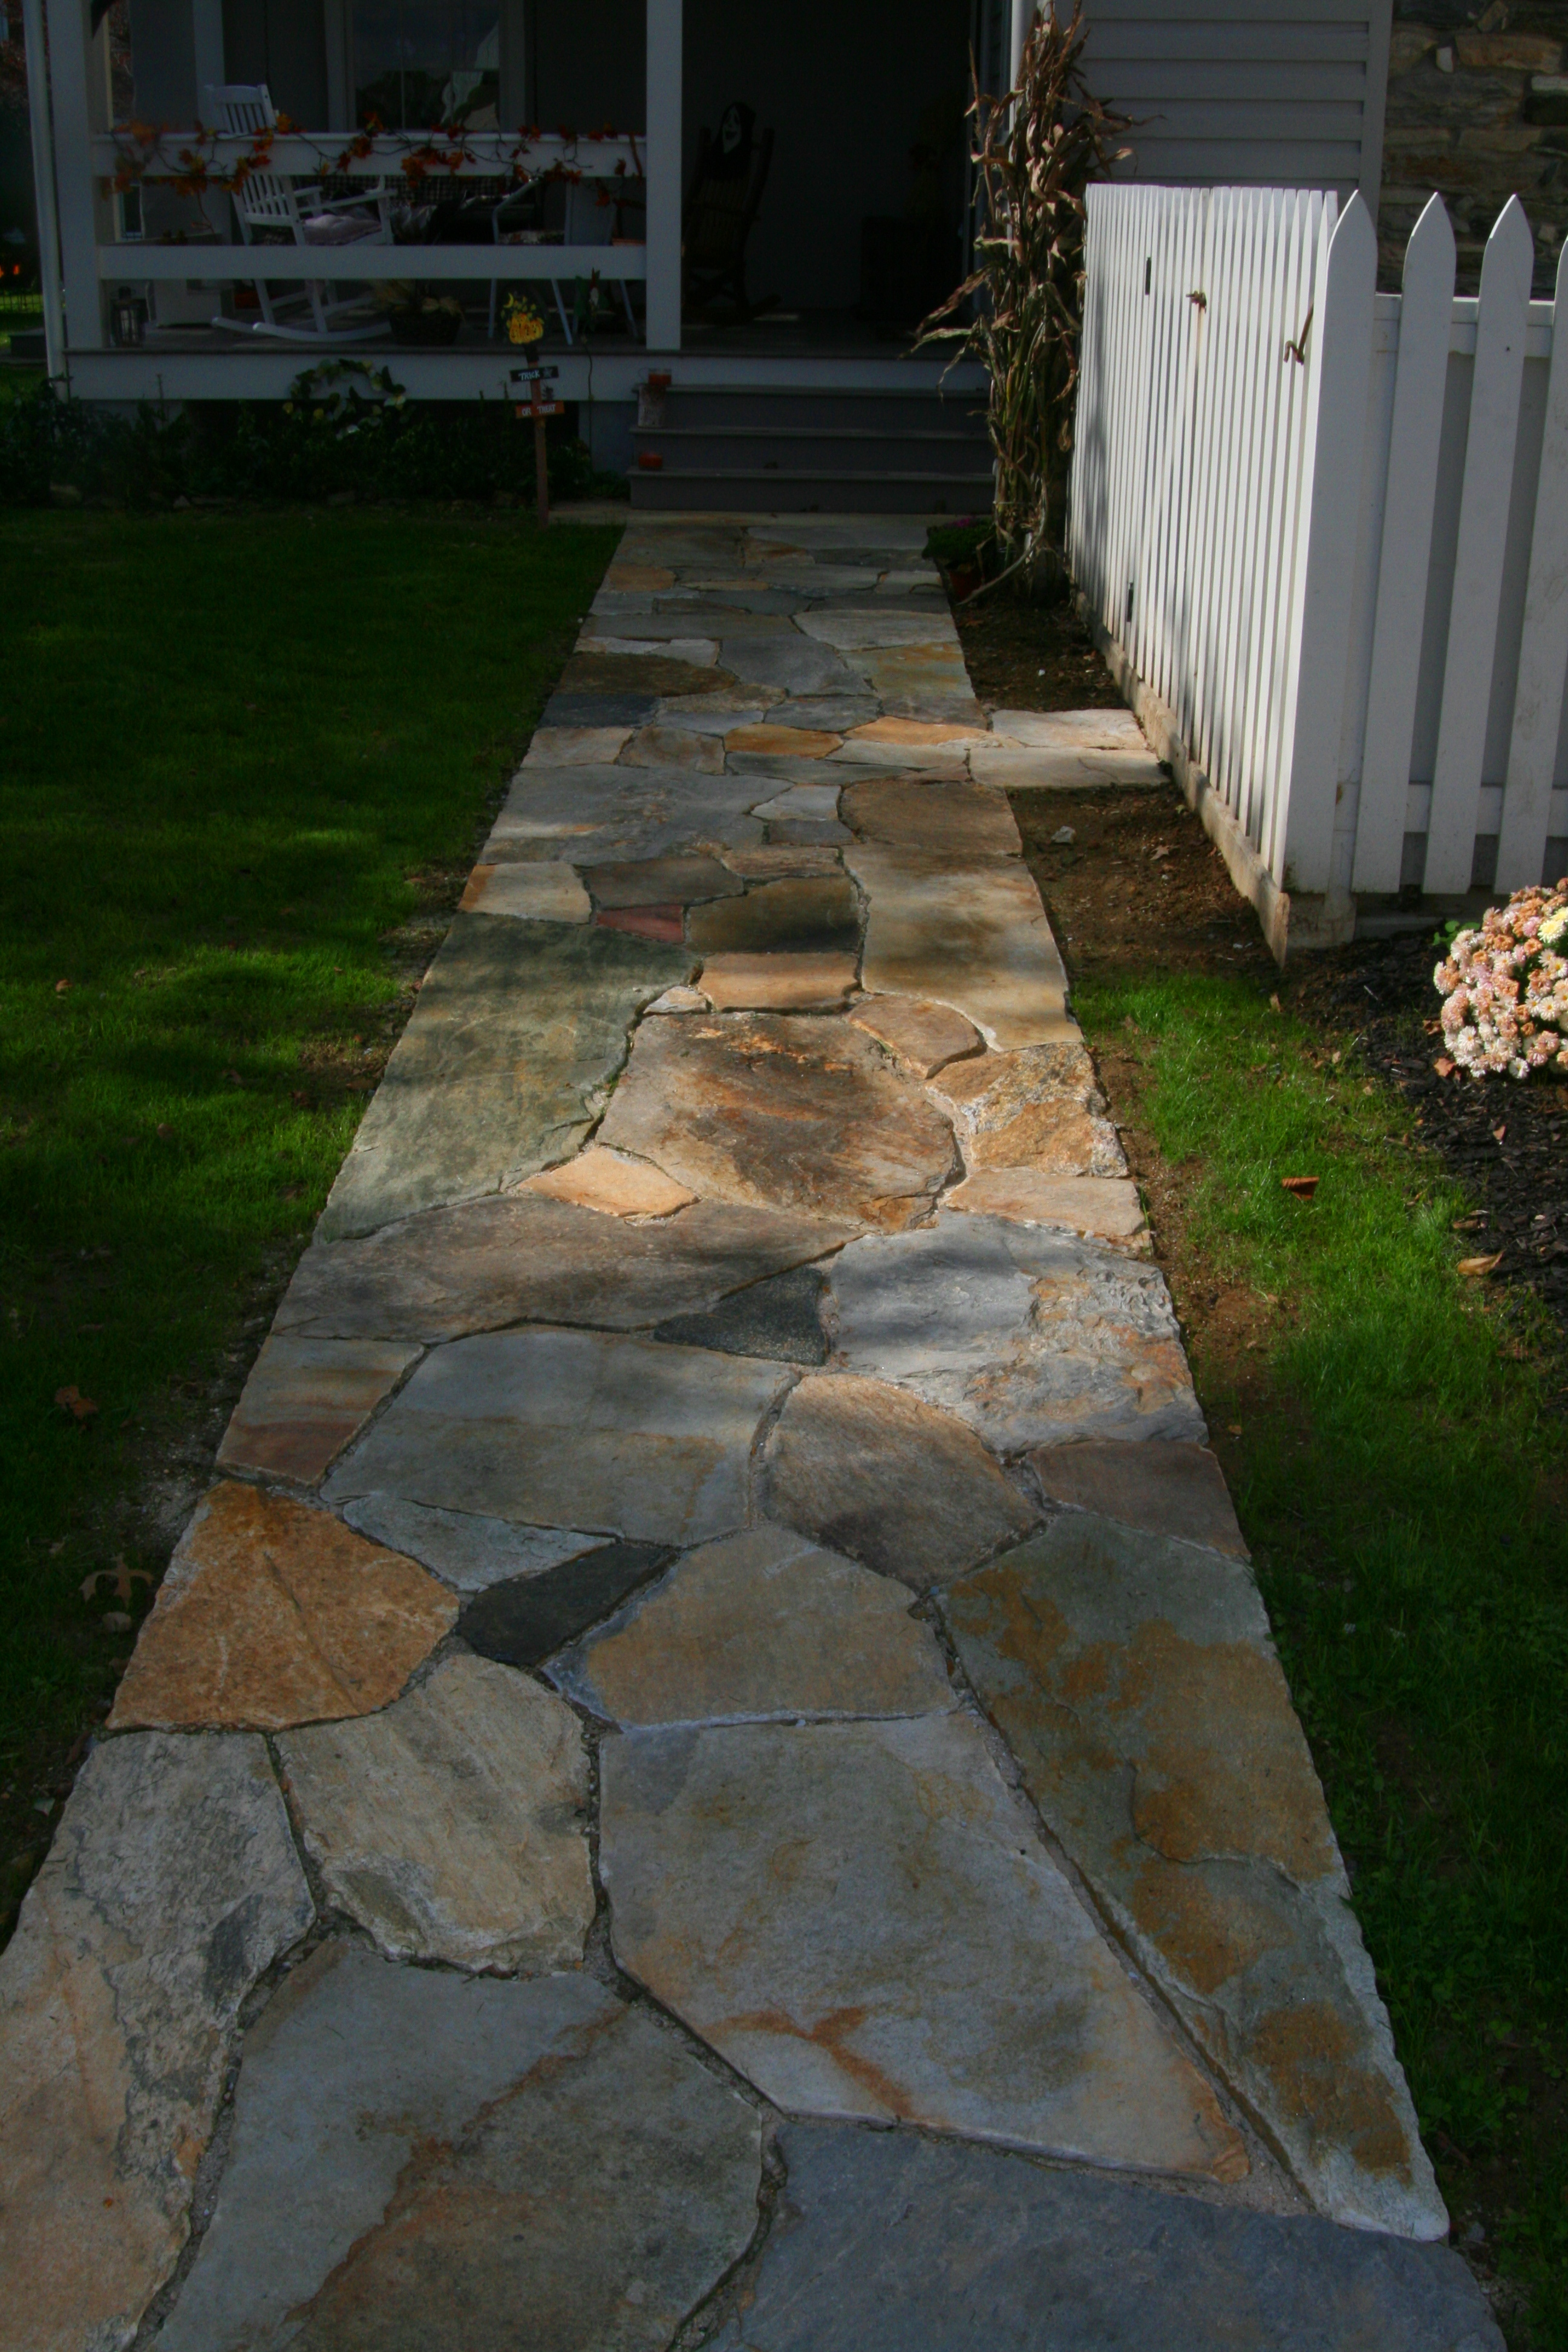 A Newly Installed Stone Sidewalk Leading Up To A Porch